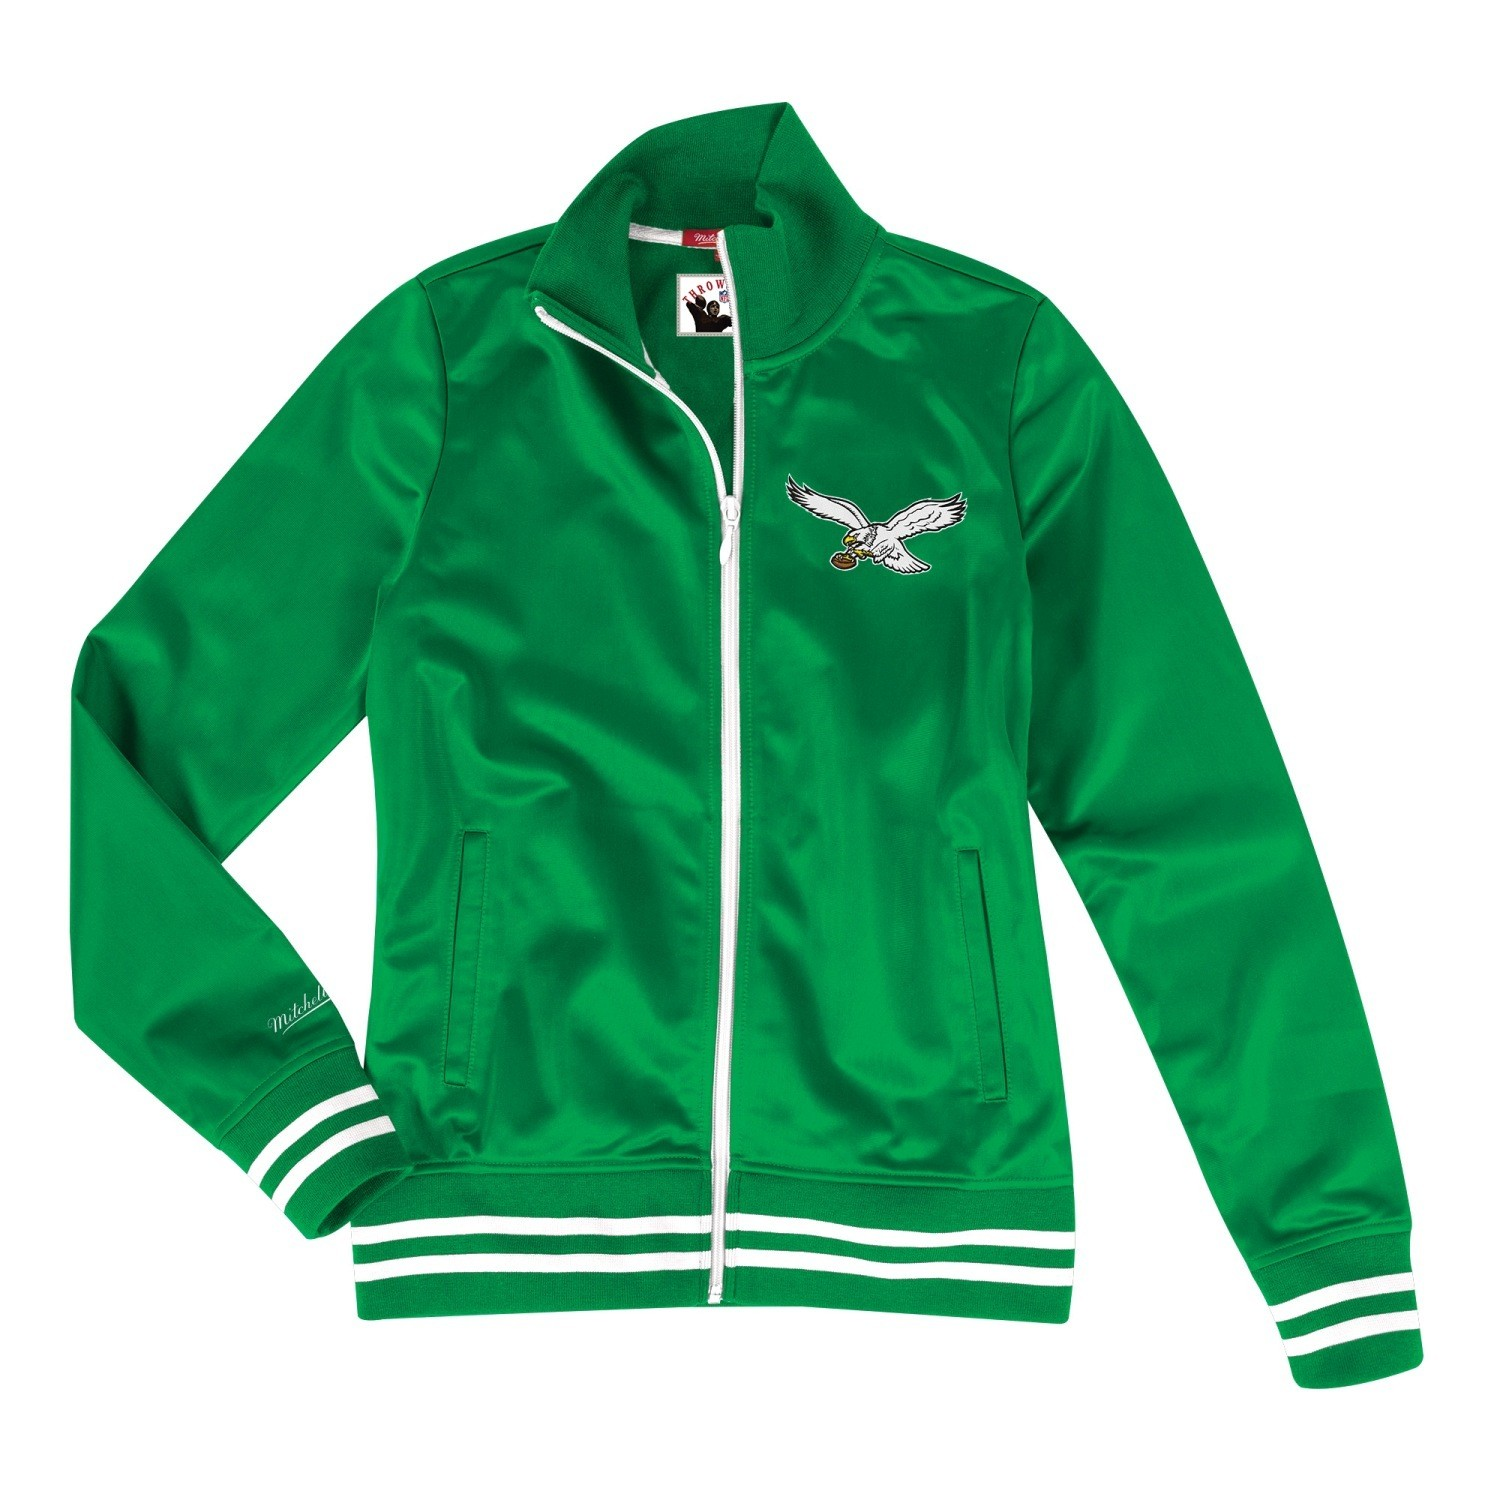 a0605865f84 Details about philadelphia eagles womens mitchell ness nfl jpg 1500x1500 Mitchell  eagles jacket